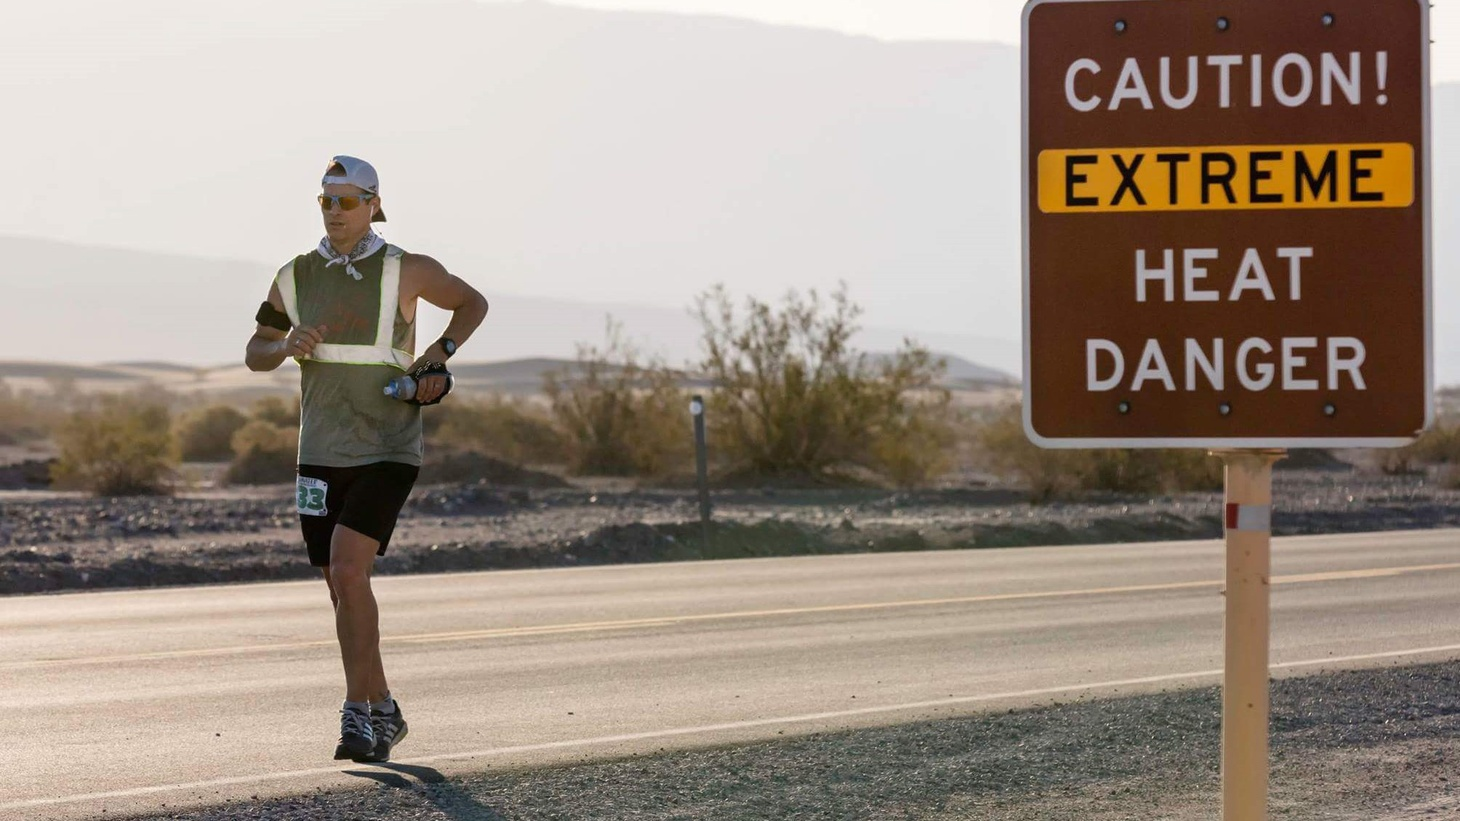 """The """"Badwater 135"""" ultra-marathon begins Monday night at the lowest point in the Western Hemisphere -- Badwater Basin in Death Valley, some 280 feet below sea level. Then it's 135 miles through tough terrain -- over two mountain ranges --- before the race ends about halfway up Mount Whitney, at 8,500 feet. It'll also be about 110 degrees at 8 pm."""